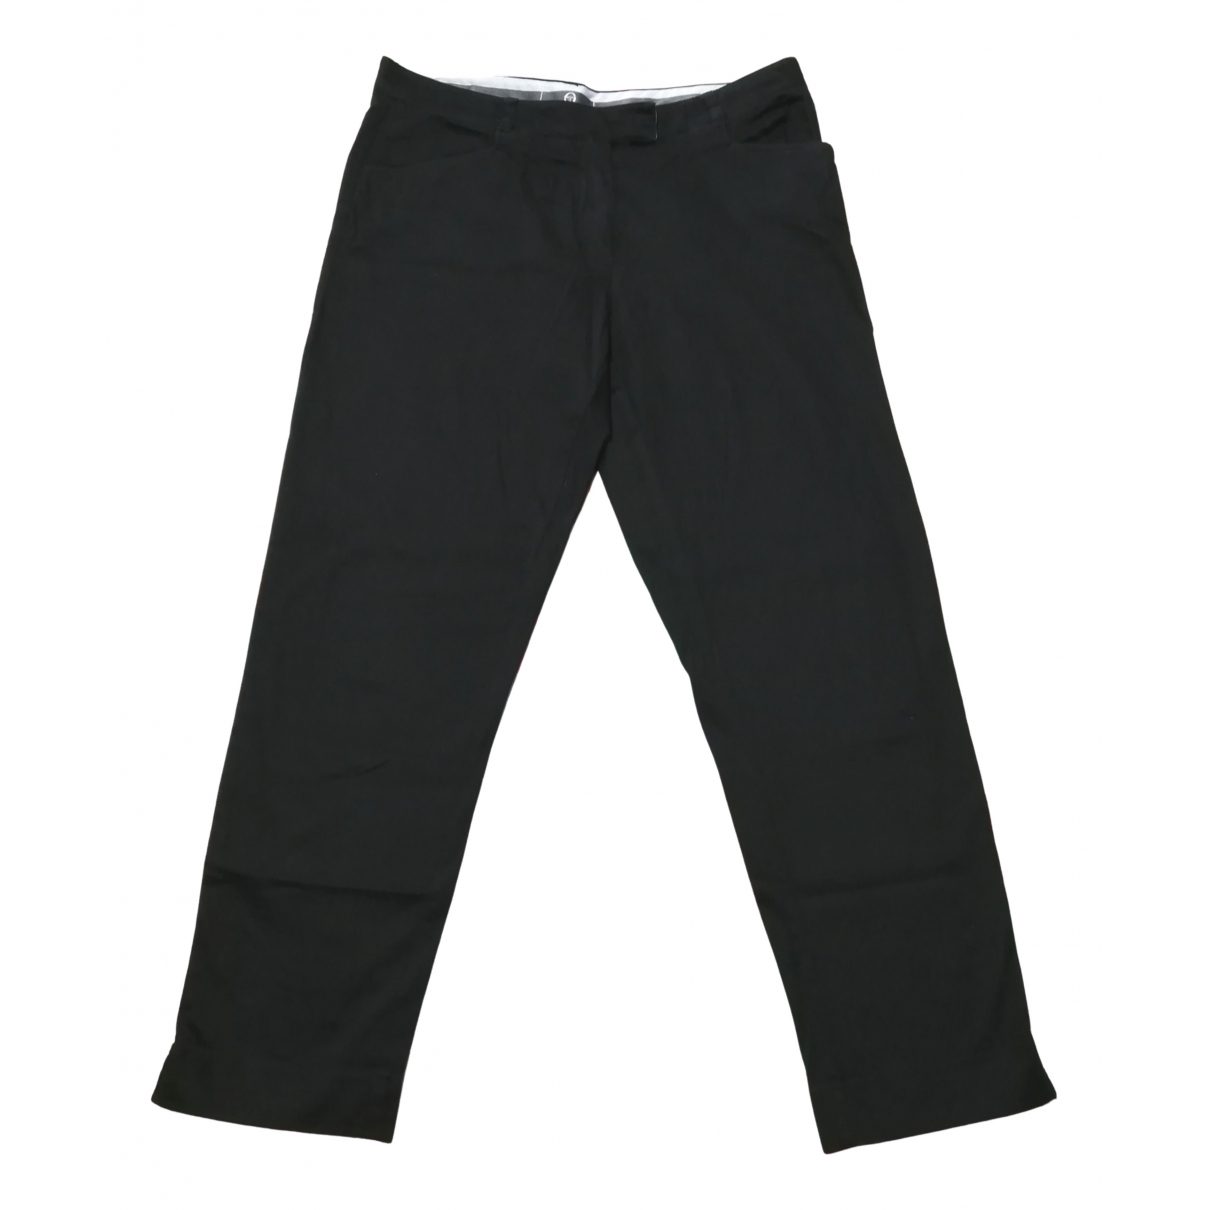 Sergio Tacchini \N Black Cotton Trousers for Women 46 IT